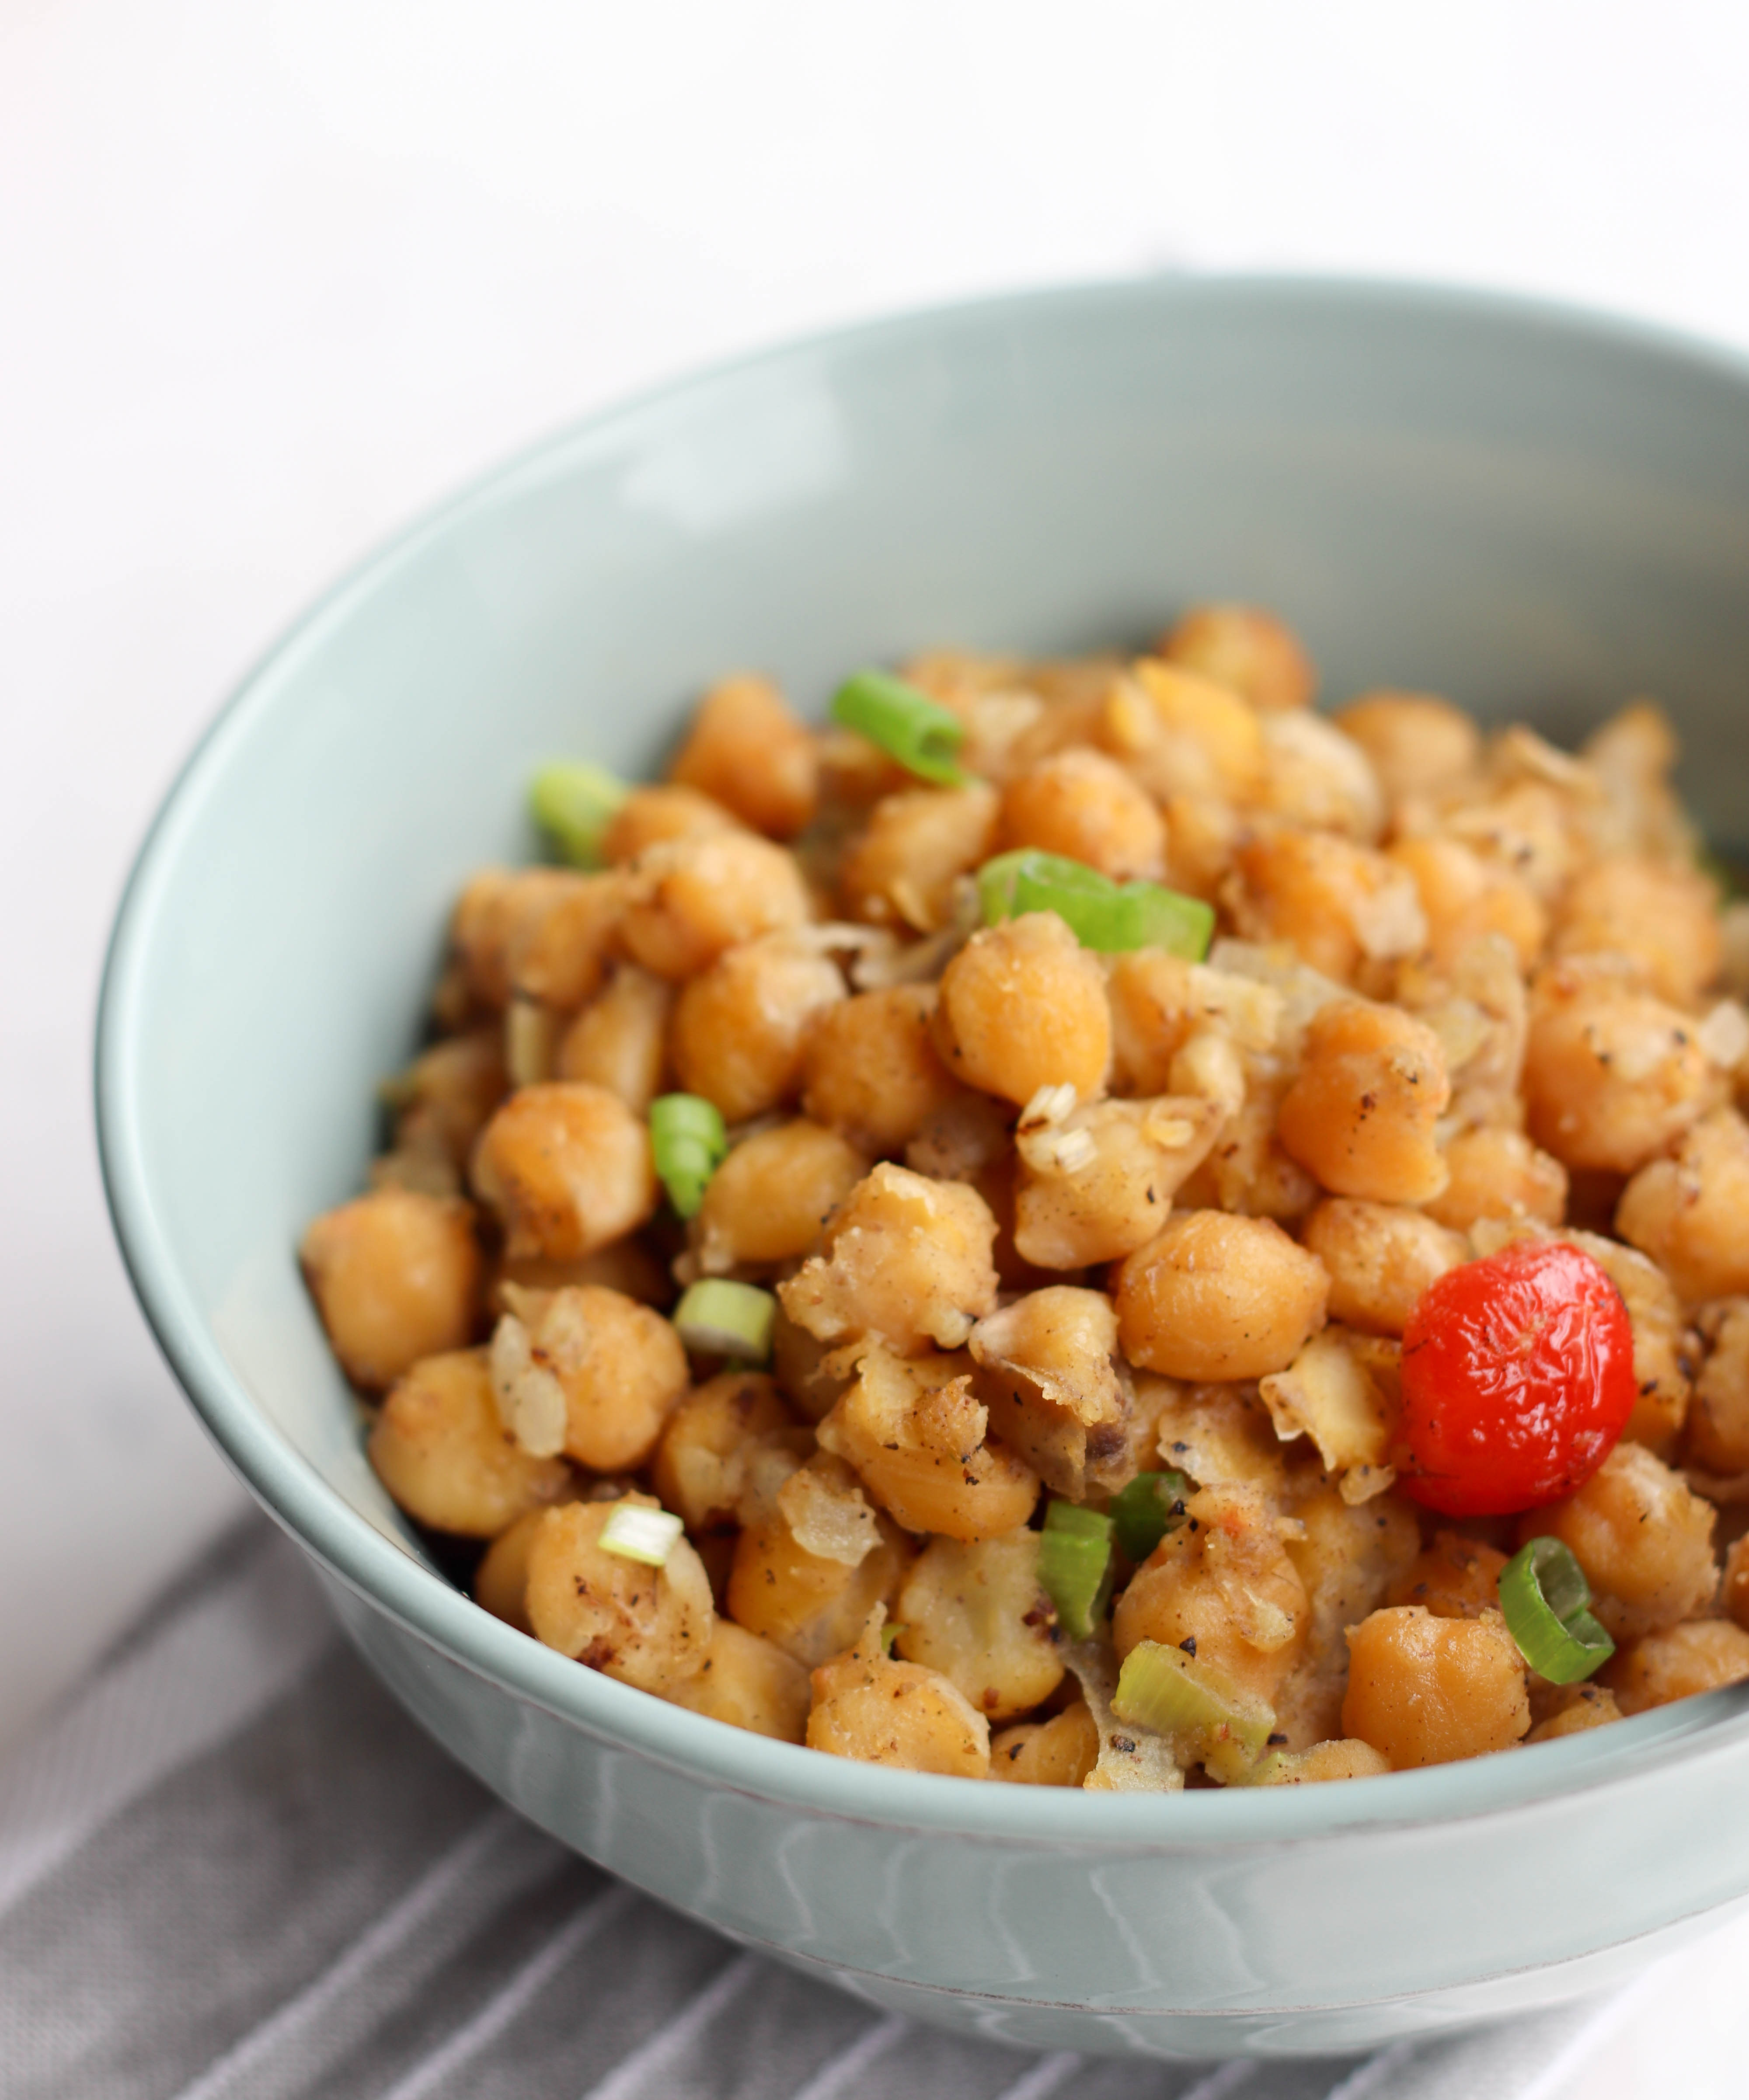 HOW TO COOK CHICK PEAS IN A PRESSURE COOKER